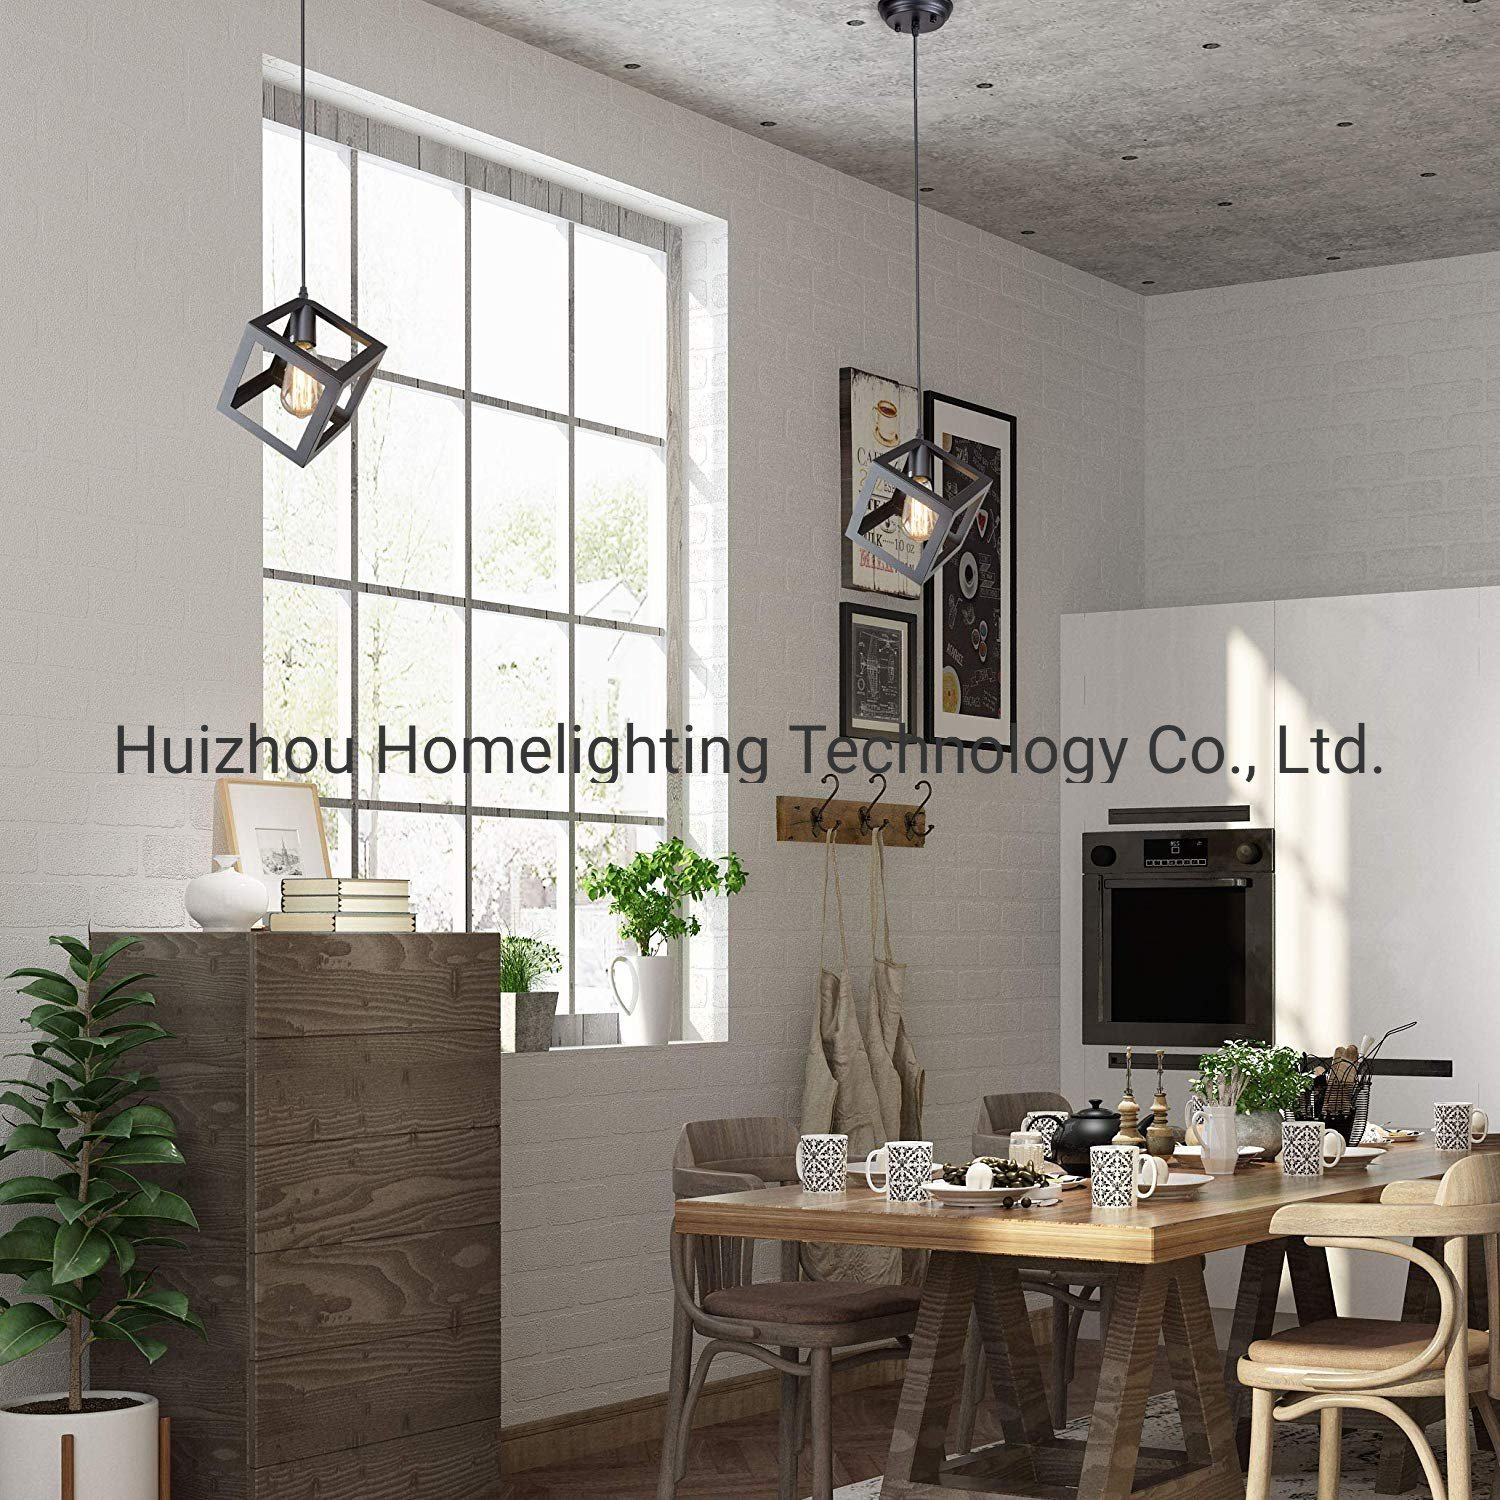 Picture of: China Jlp 2016 Square Pendant Lighting Ceiling Lights Hanging Lamp Light Fixtures For Living Room Dining Room Kitchen Island Photos Pictures Made In China Com